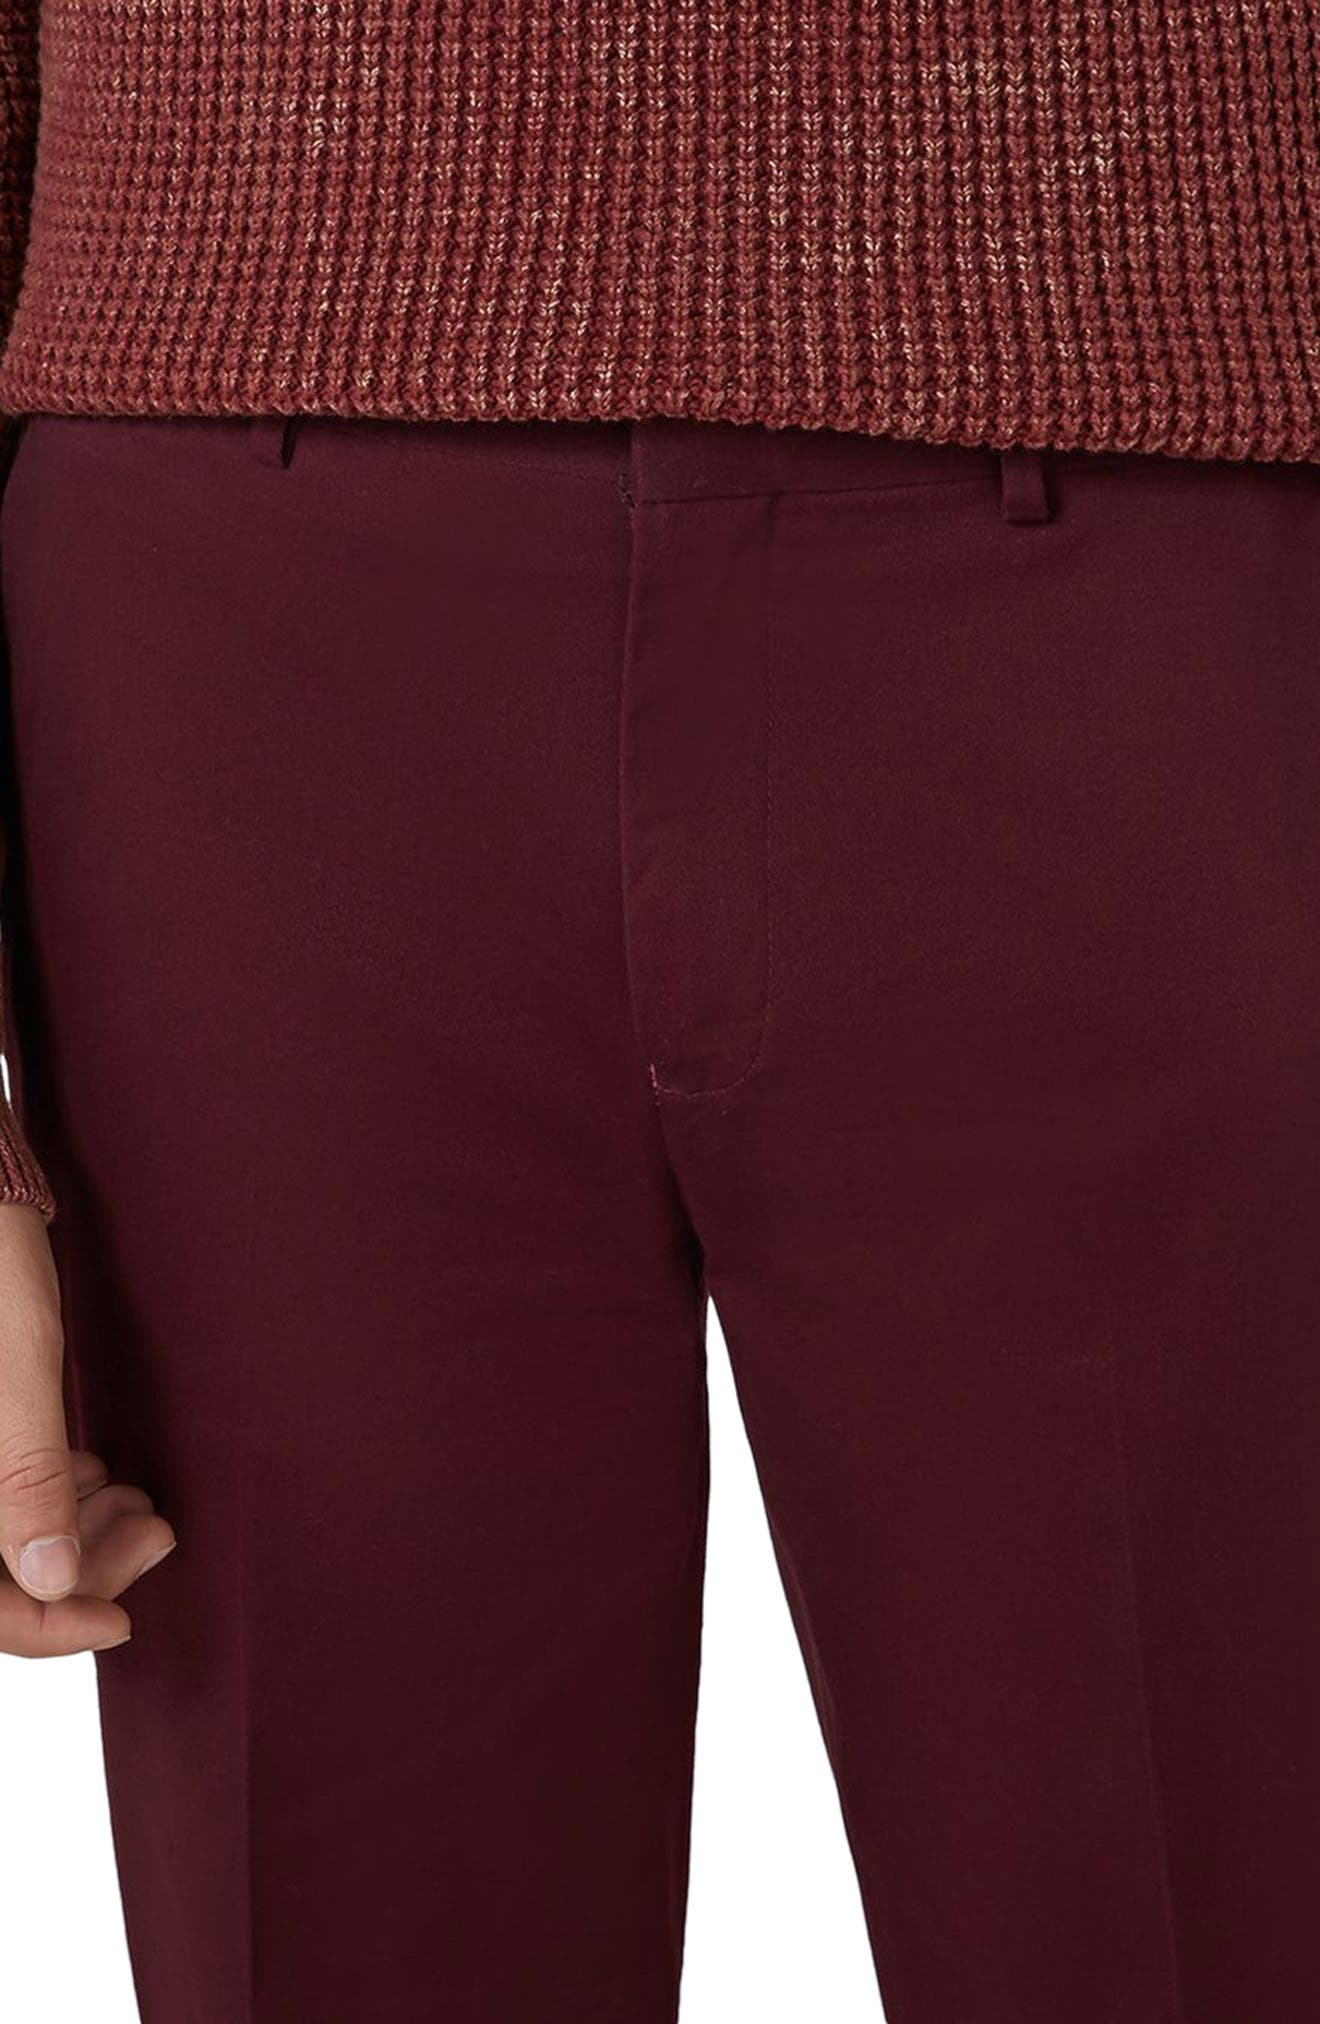 Twill Tapered Trousers,                             Alternate thumbnail 3, color,                             Burgundy